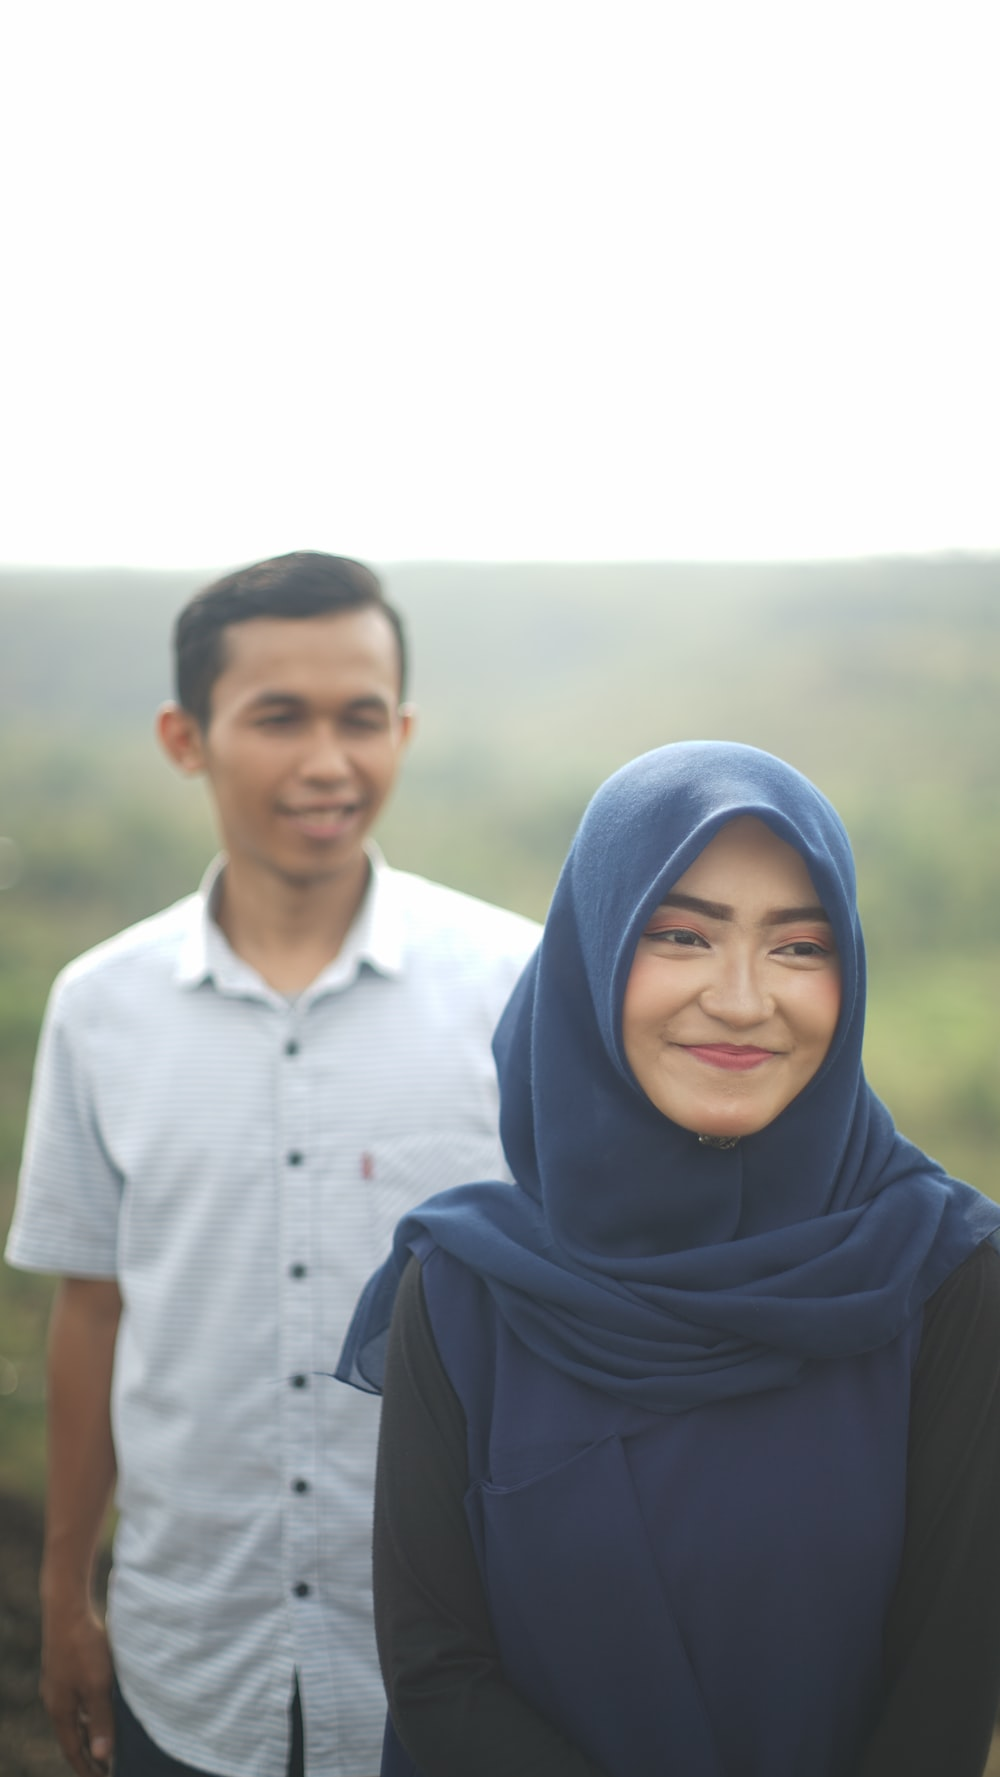 smiling woman beside man smiling